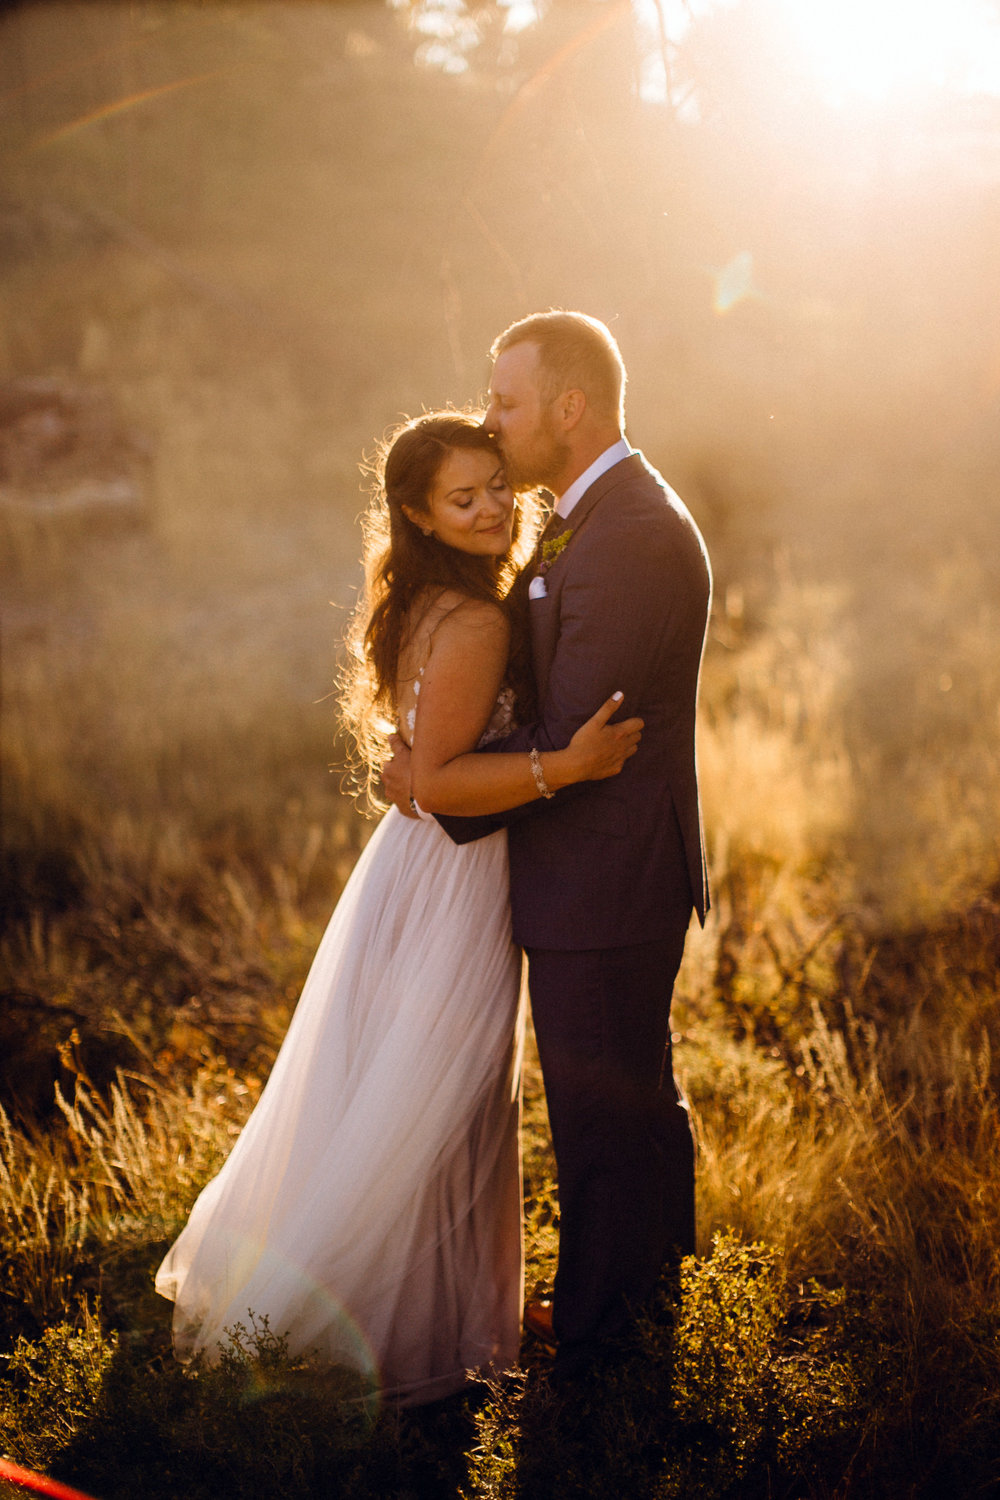 Liz Osban Photography Vedauwoo Buford Wyoming Happy Jack Wedding Elopement Destination Small Forest Cheyenne Laramie Medicine Bow National Forest Portraits Sarah Taylor28.jpg